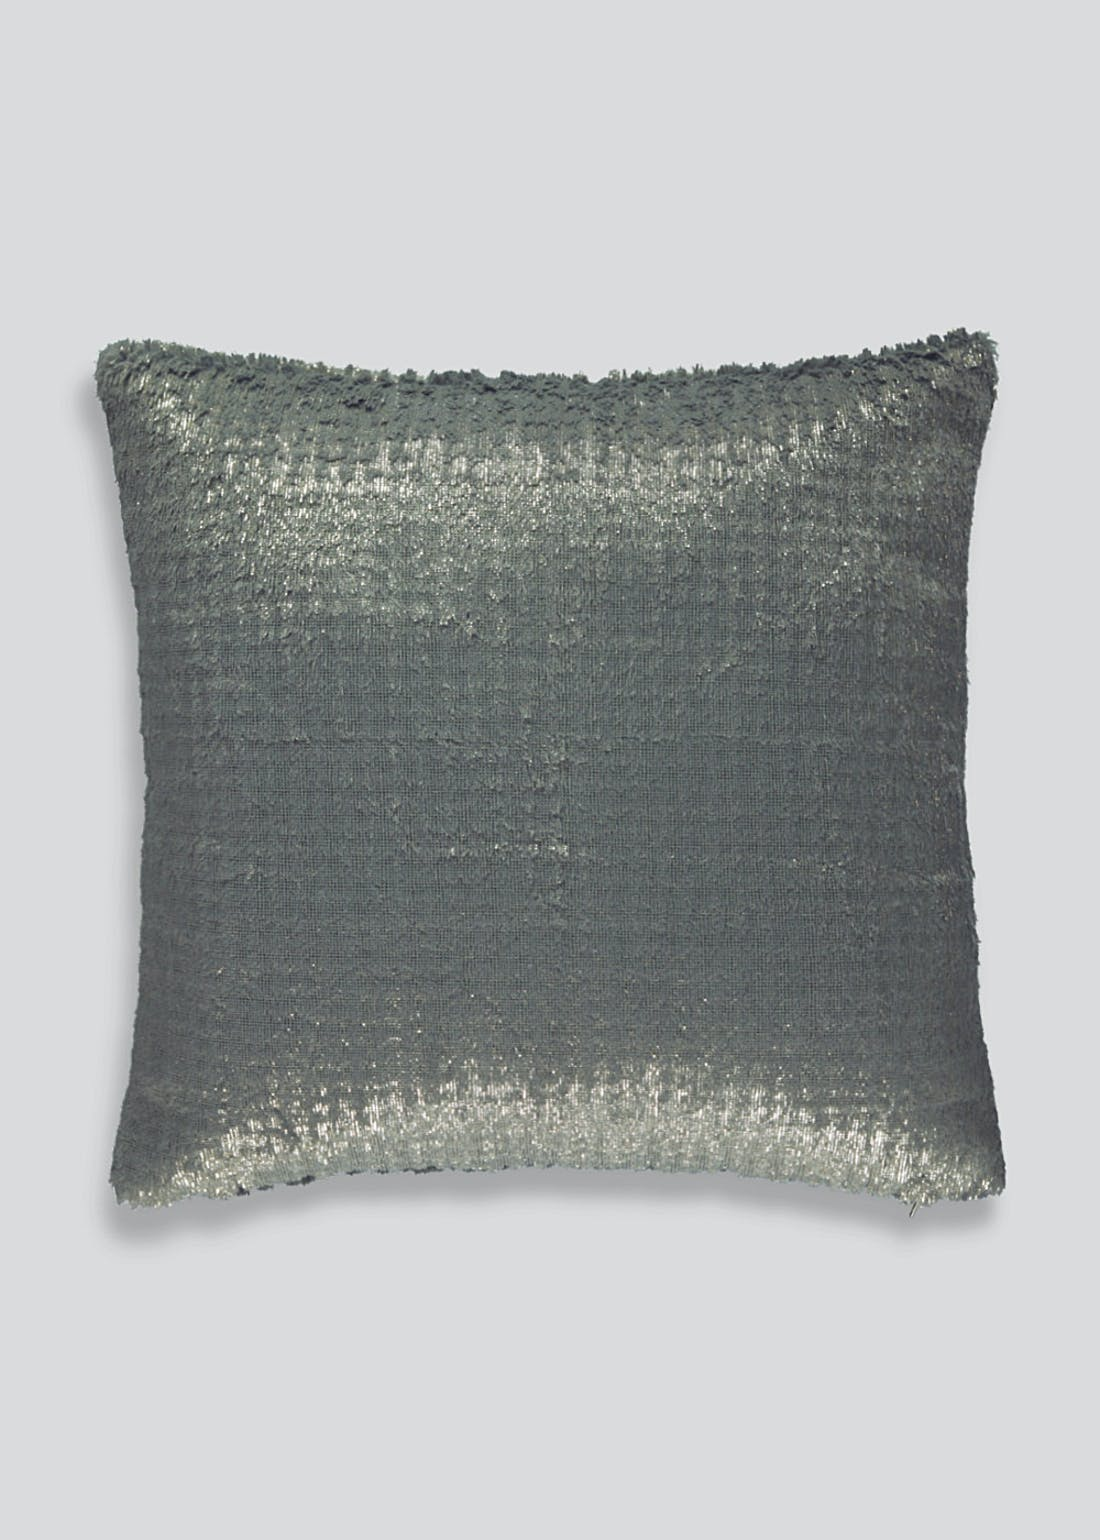 Foiled Faux Fur Cushion (46cm x 46cm)